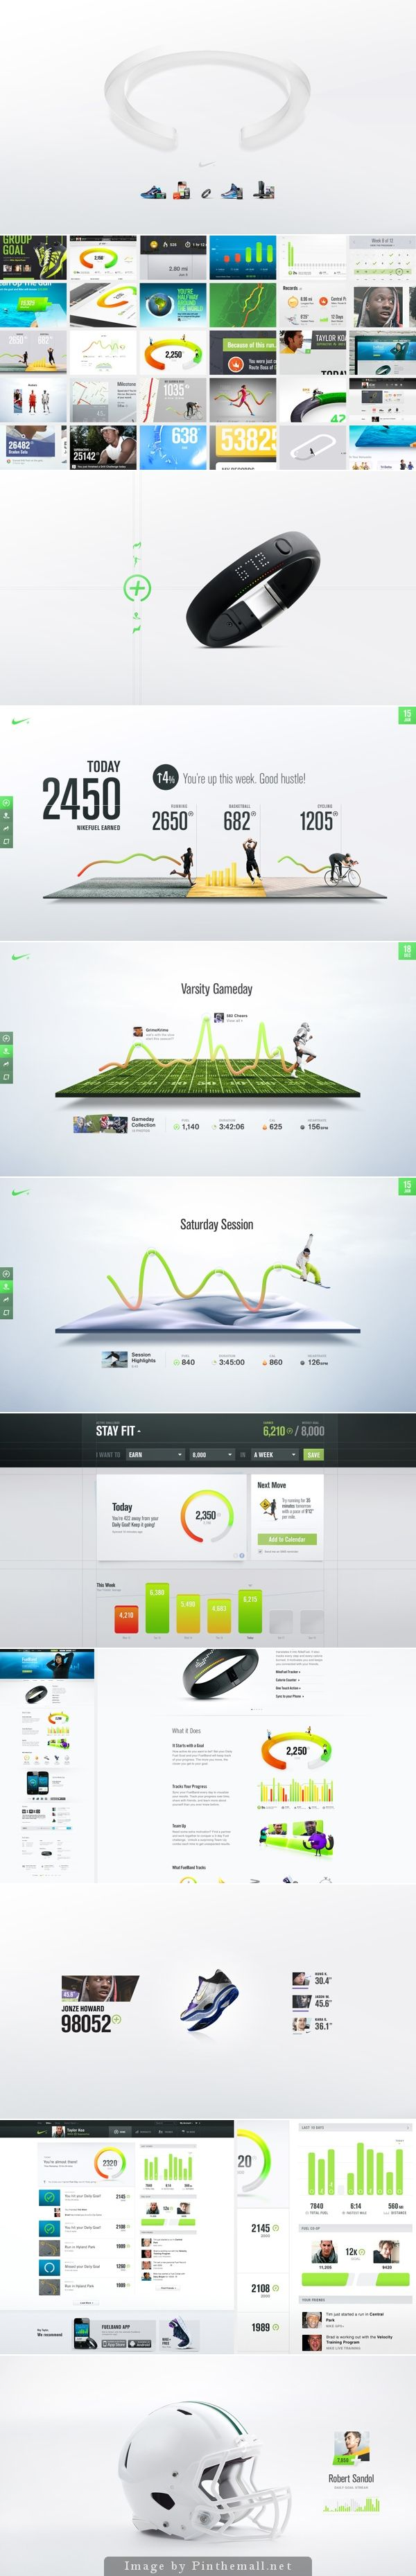 #nike #mobile #design #digital